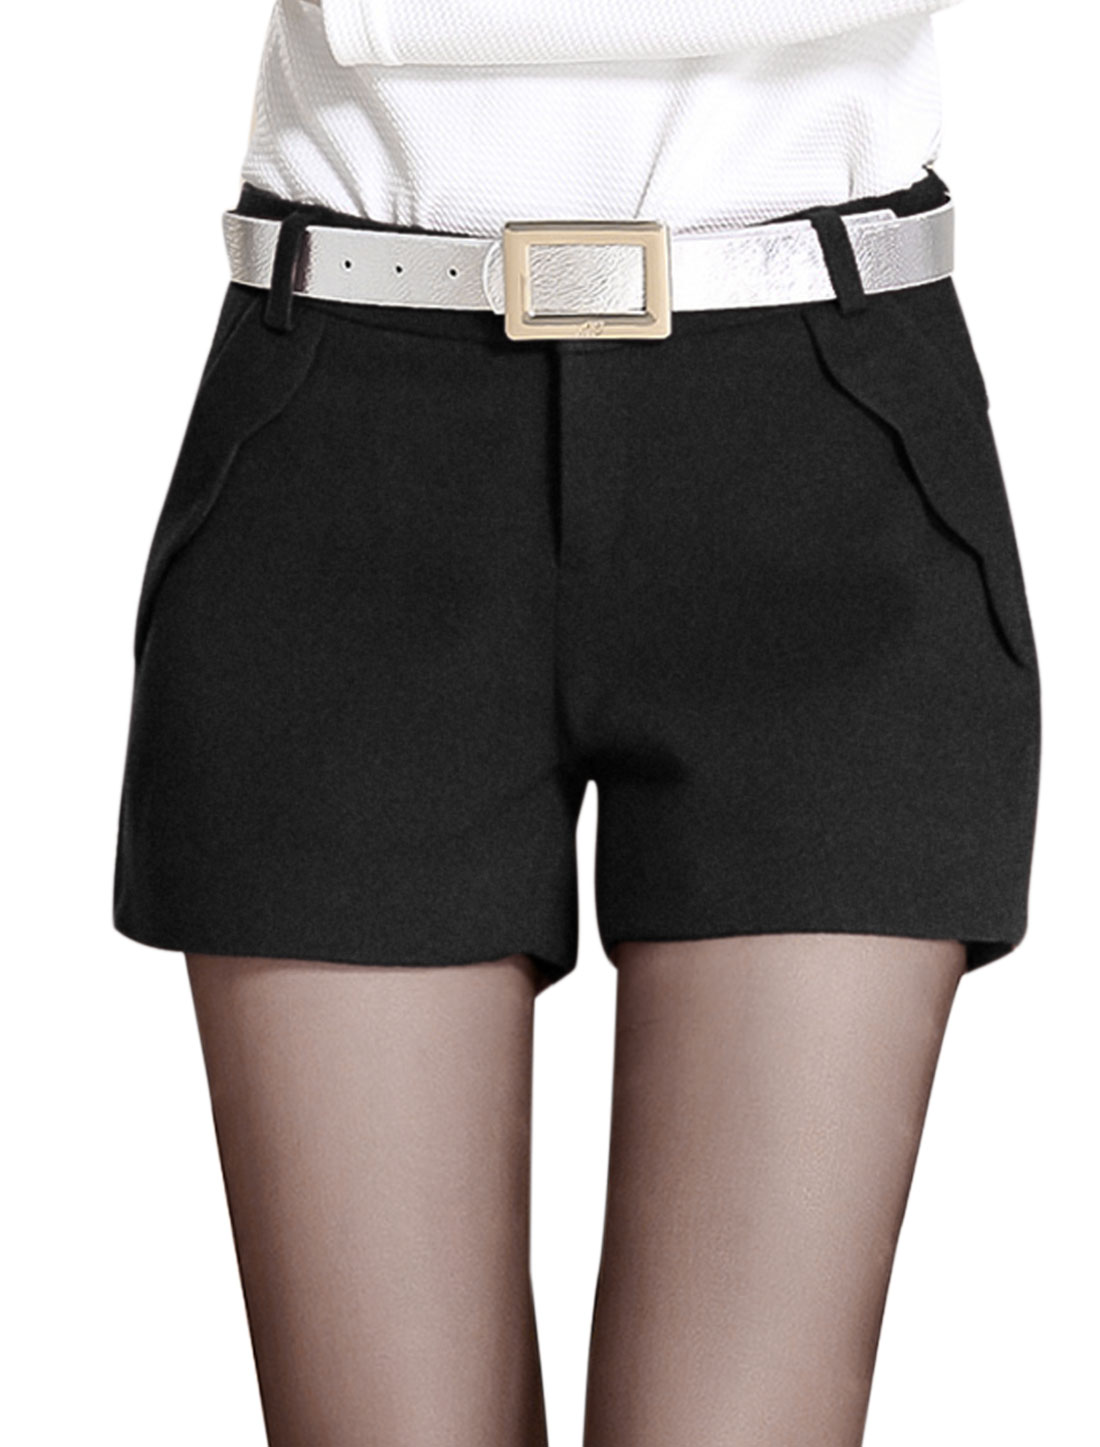 Lady One Button Closure Zip Fly Fashion Casual Shorts Black M